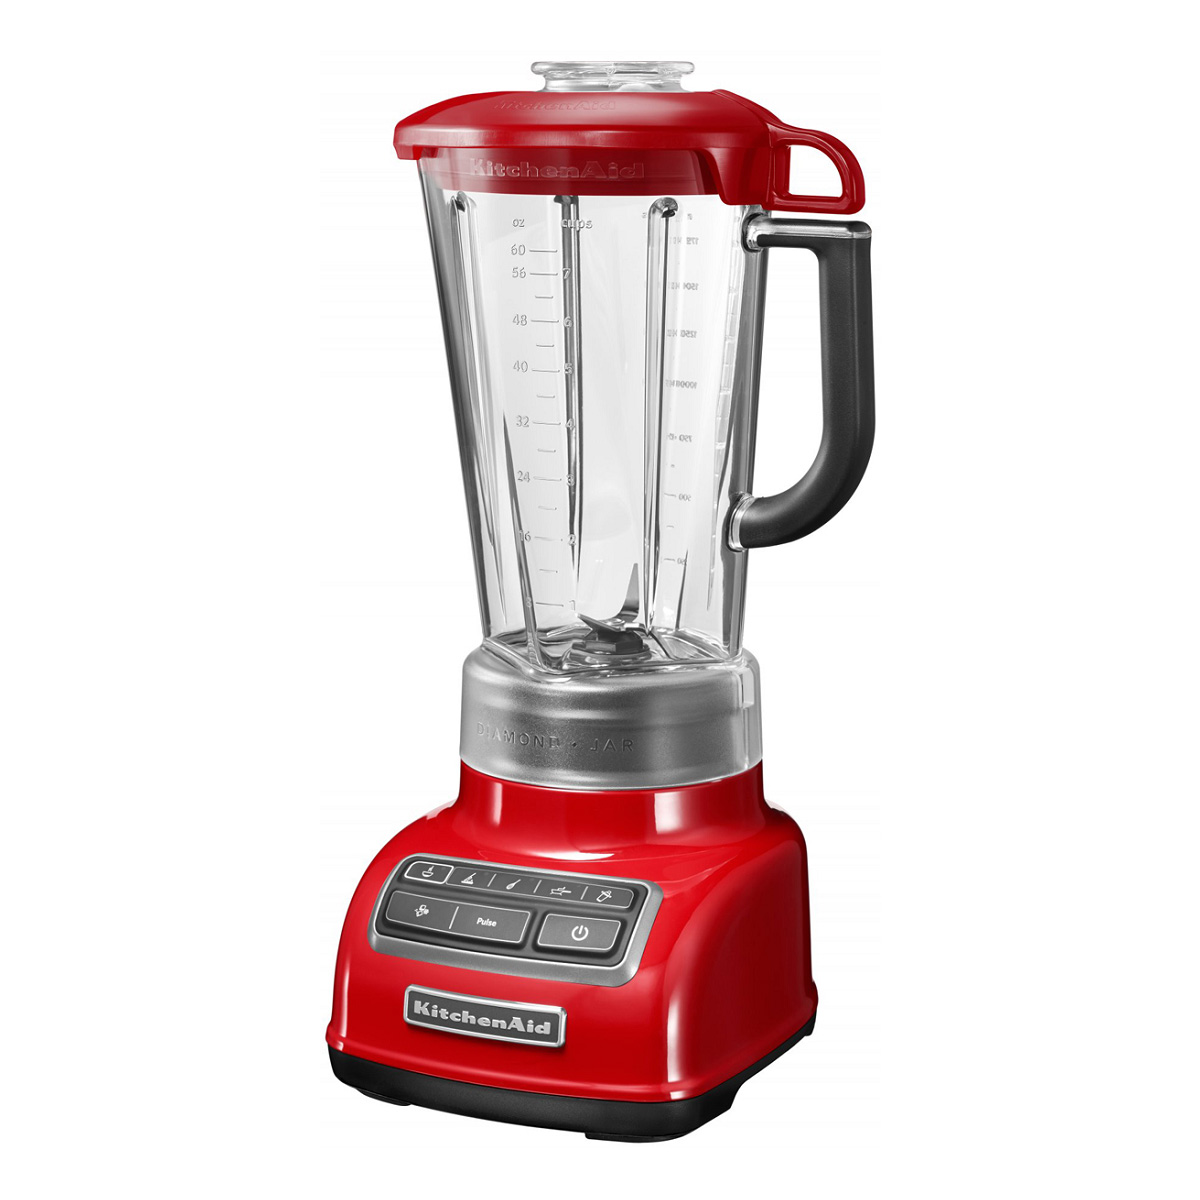 KitchenAid Blender 95610